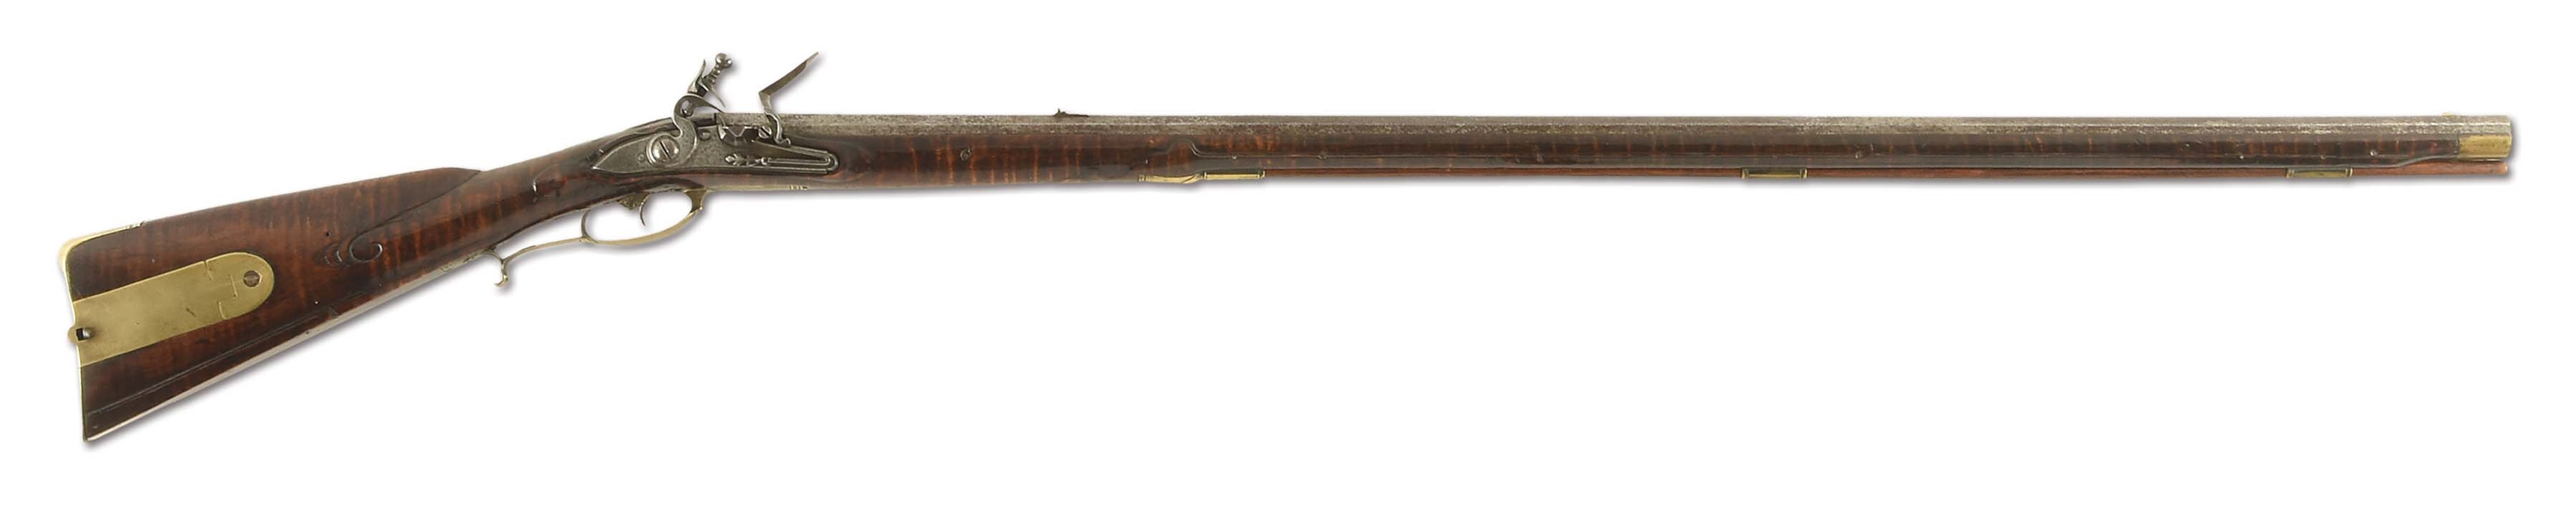 (A) EARLY AND FINE MORAVIAN FLINTLOCK RIFLE ATTRIBUTED TO ANDREAS ALBRECHT.